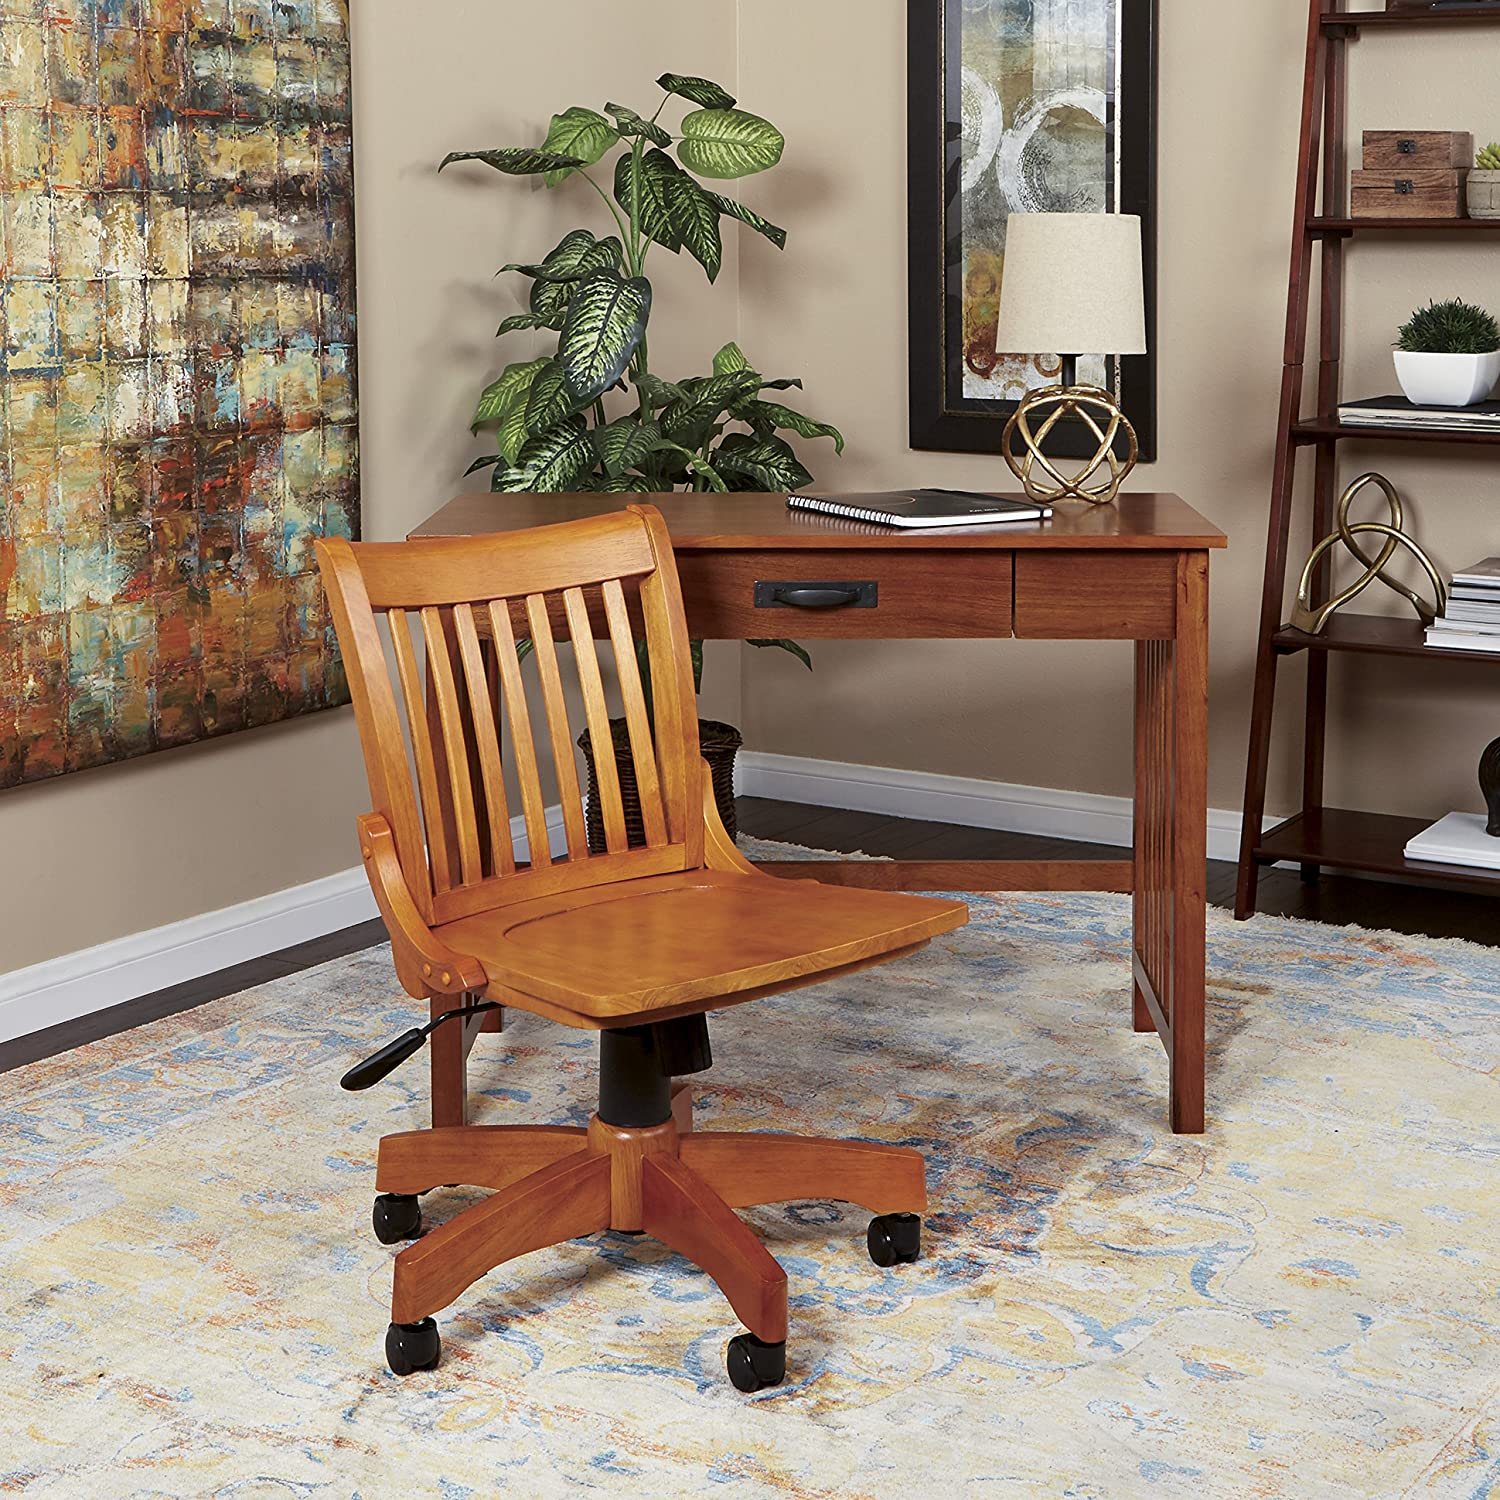 Amazon fice Star Deluxe Armless Wood Bankers Desk Chair with